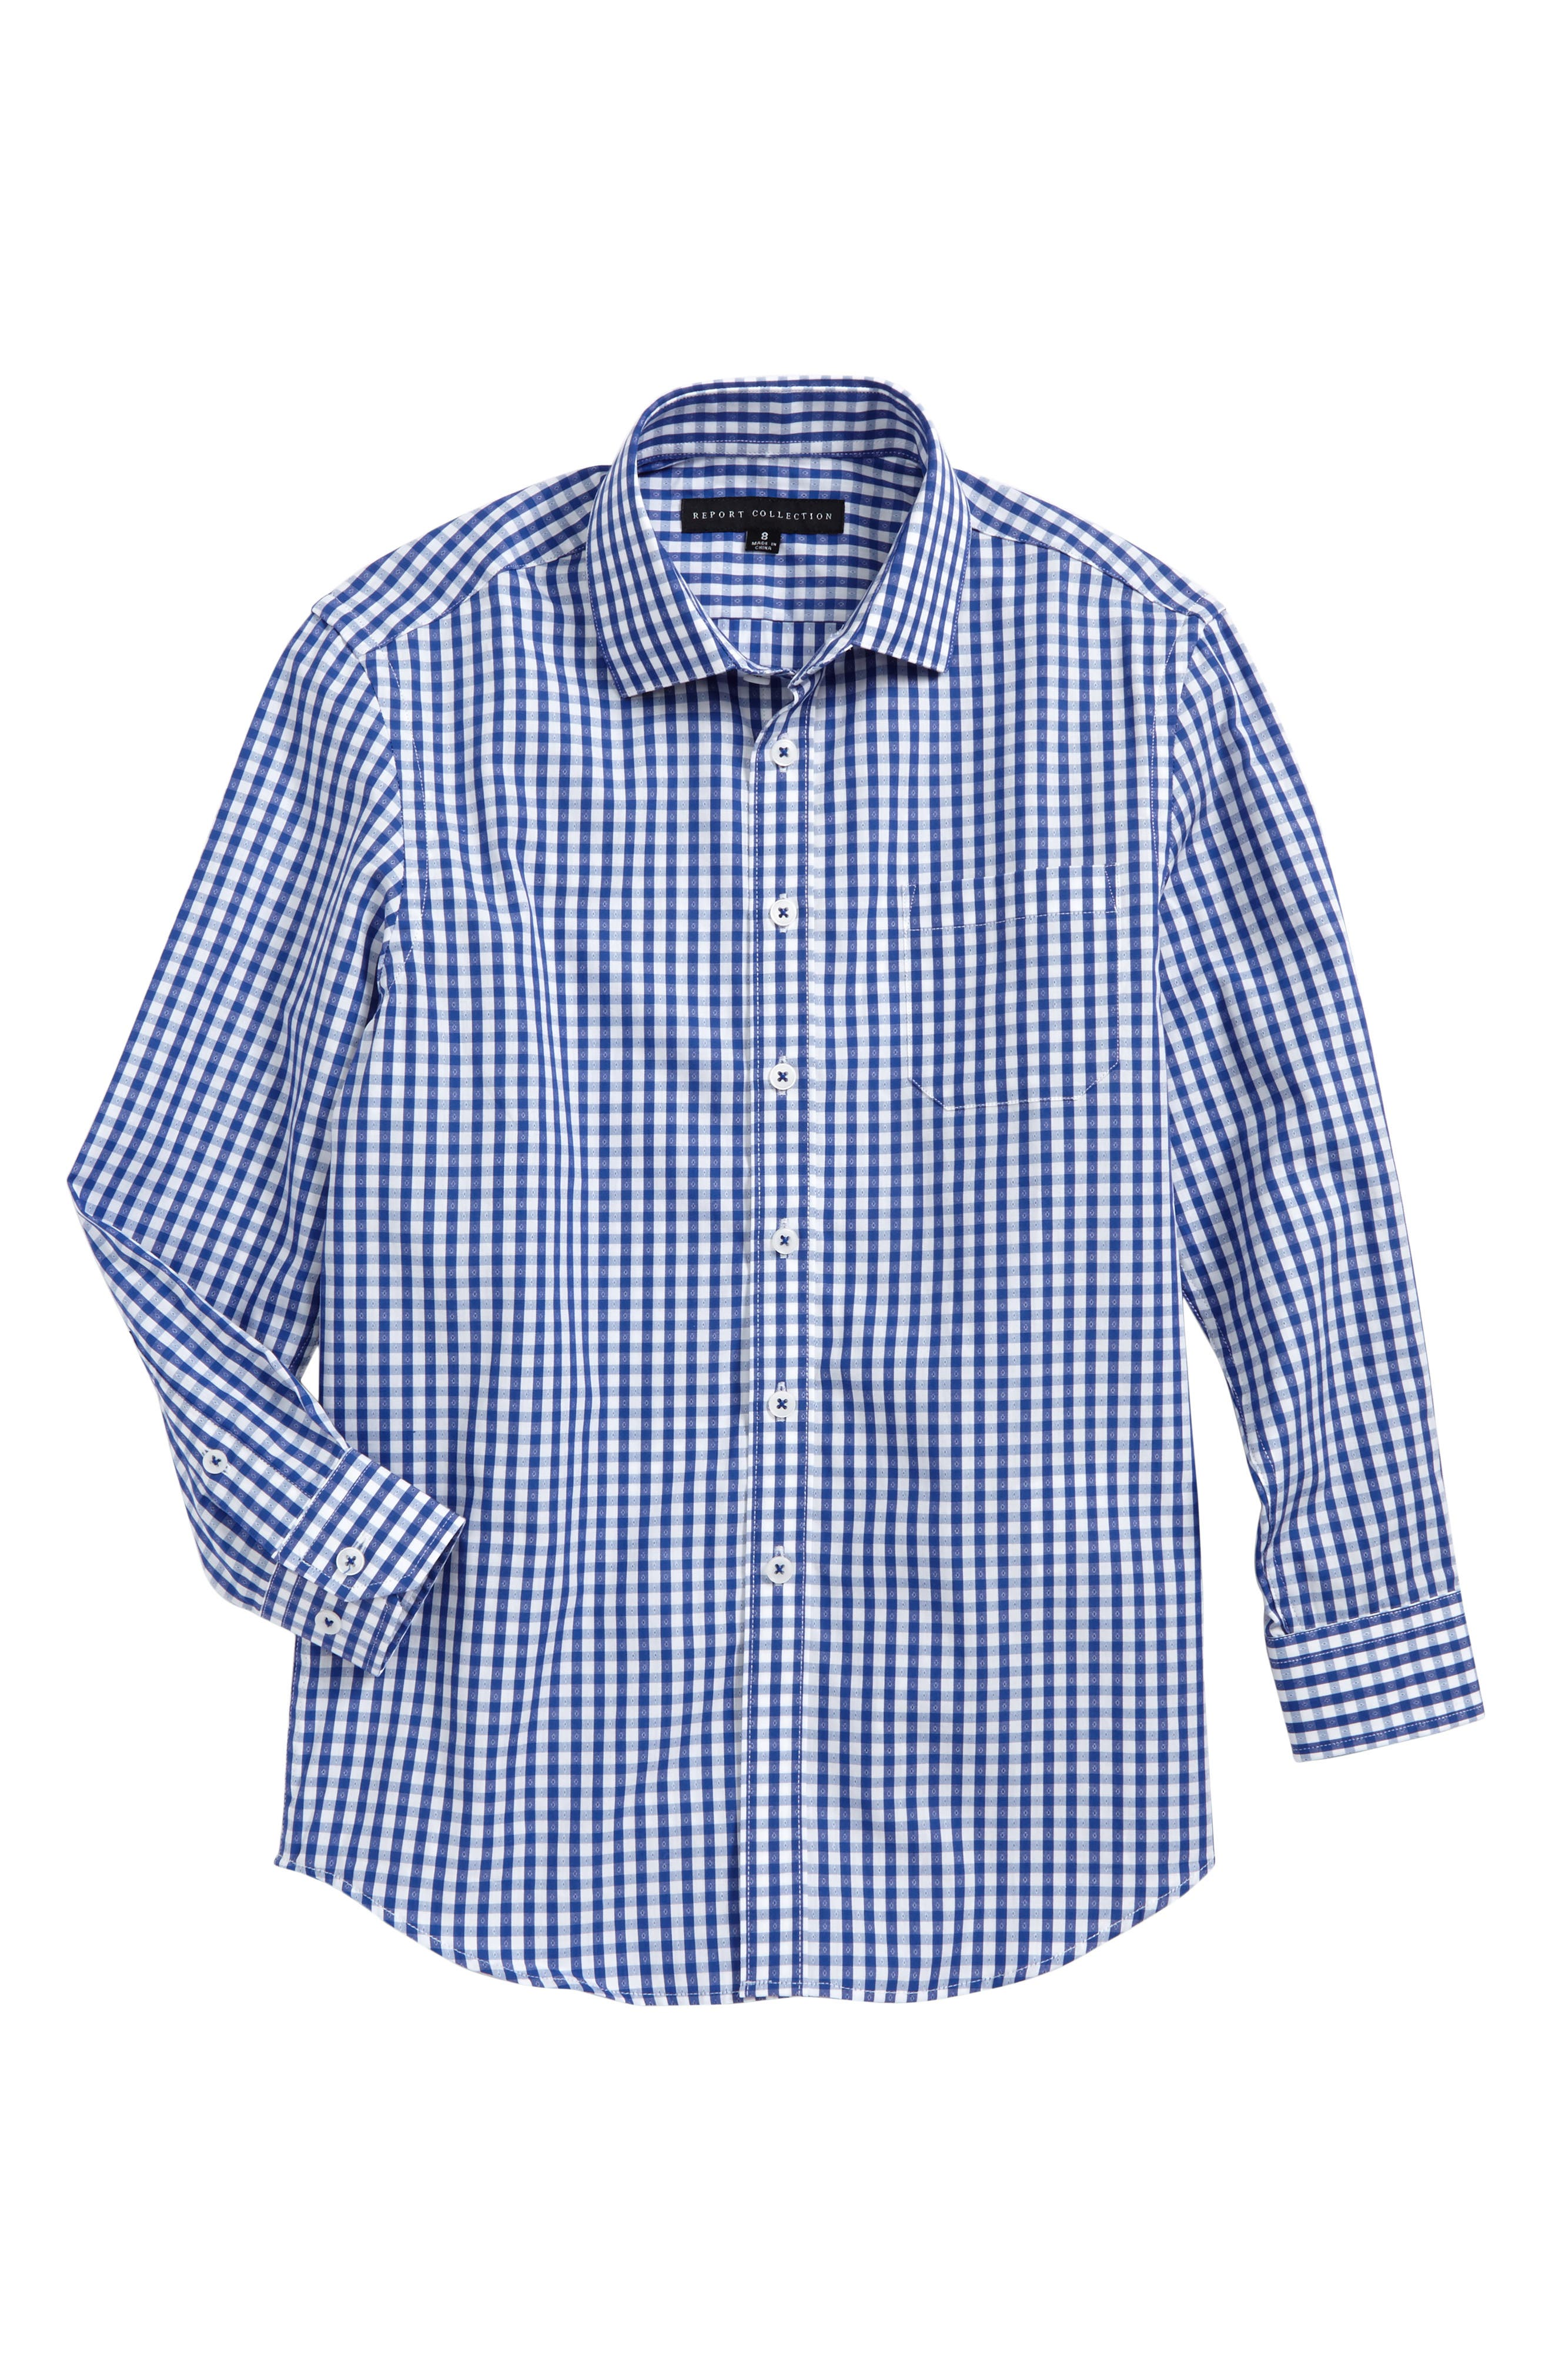 Alternate Image 1 Selected - Report Collection Check Print Dress Shirt (Big Boys)